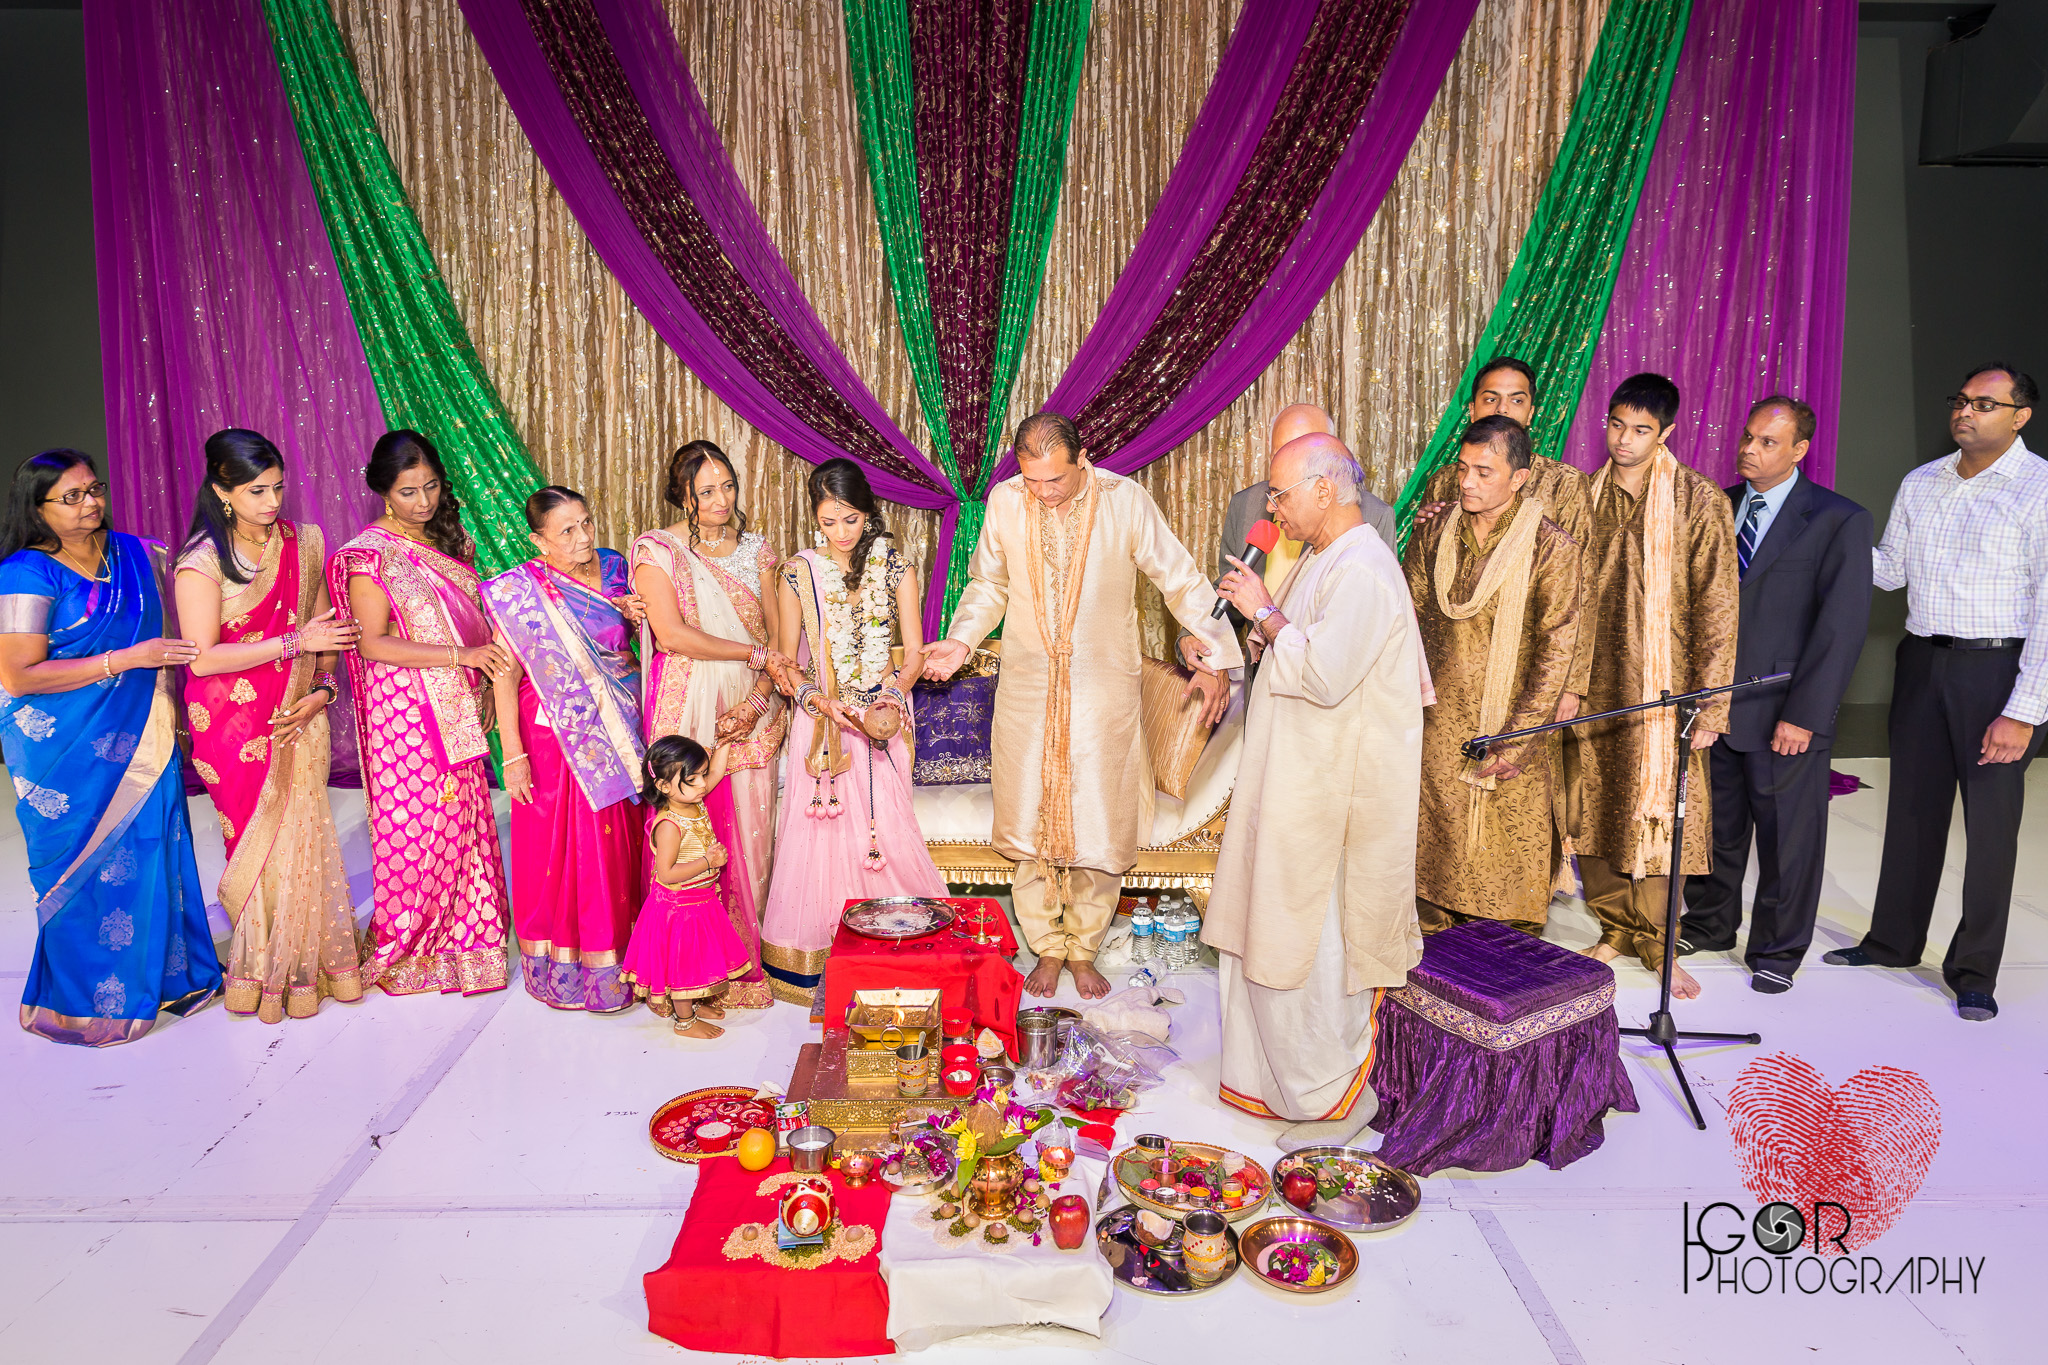 Rachna-Prasad-Indian-Wedding-21.jpg